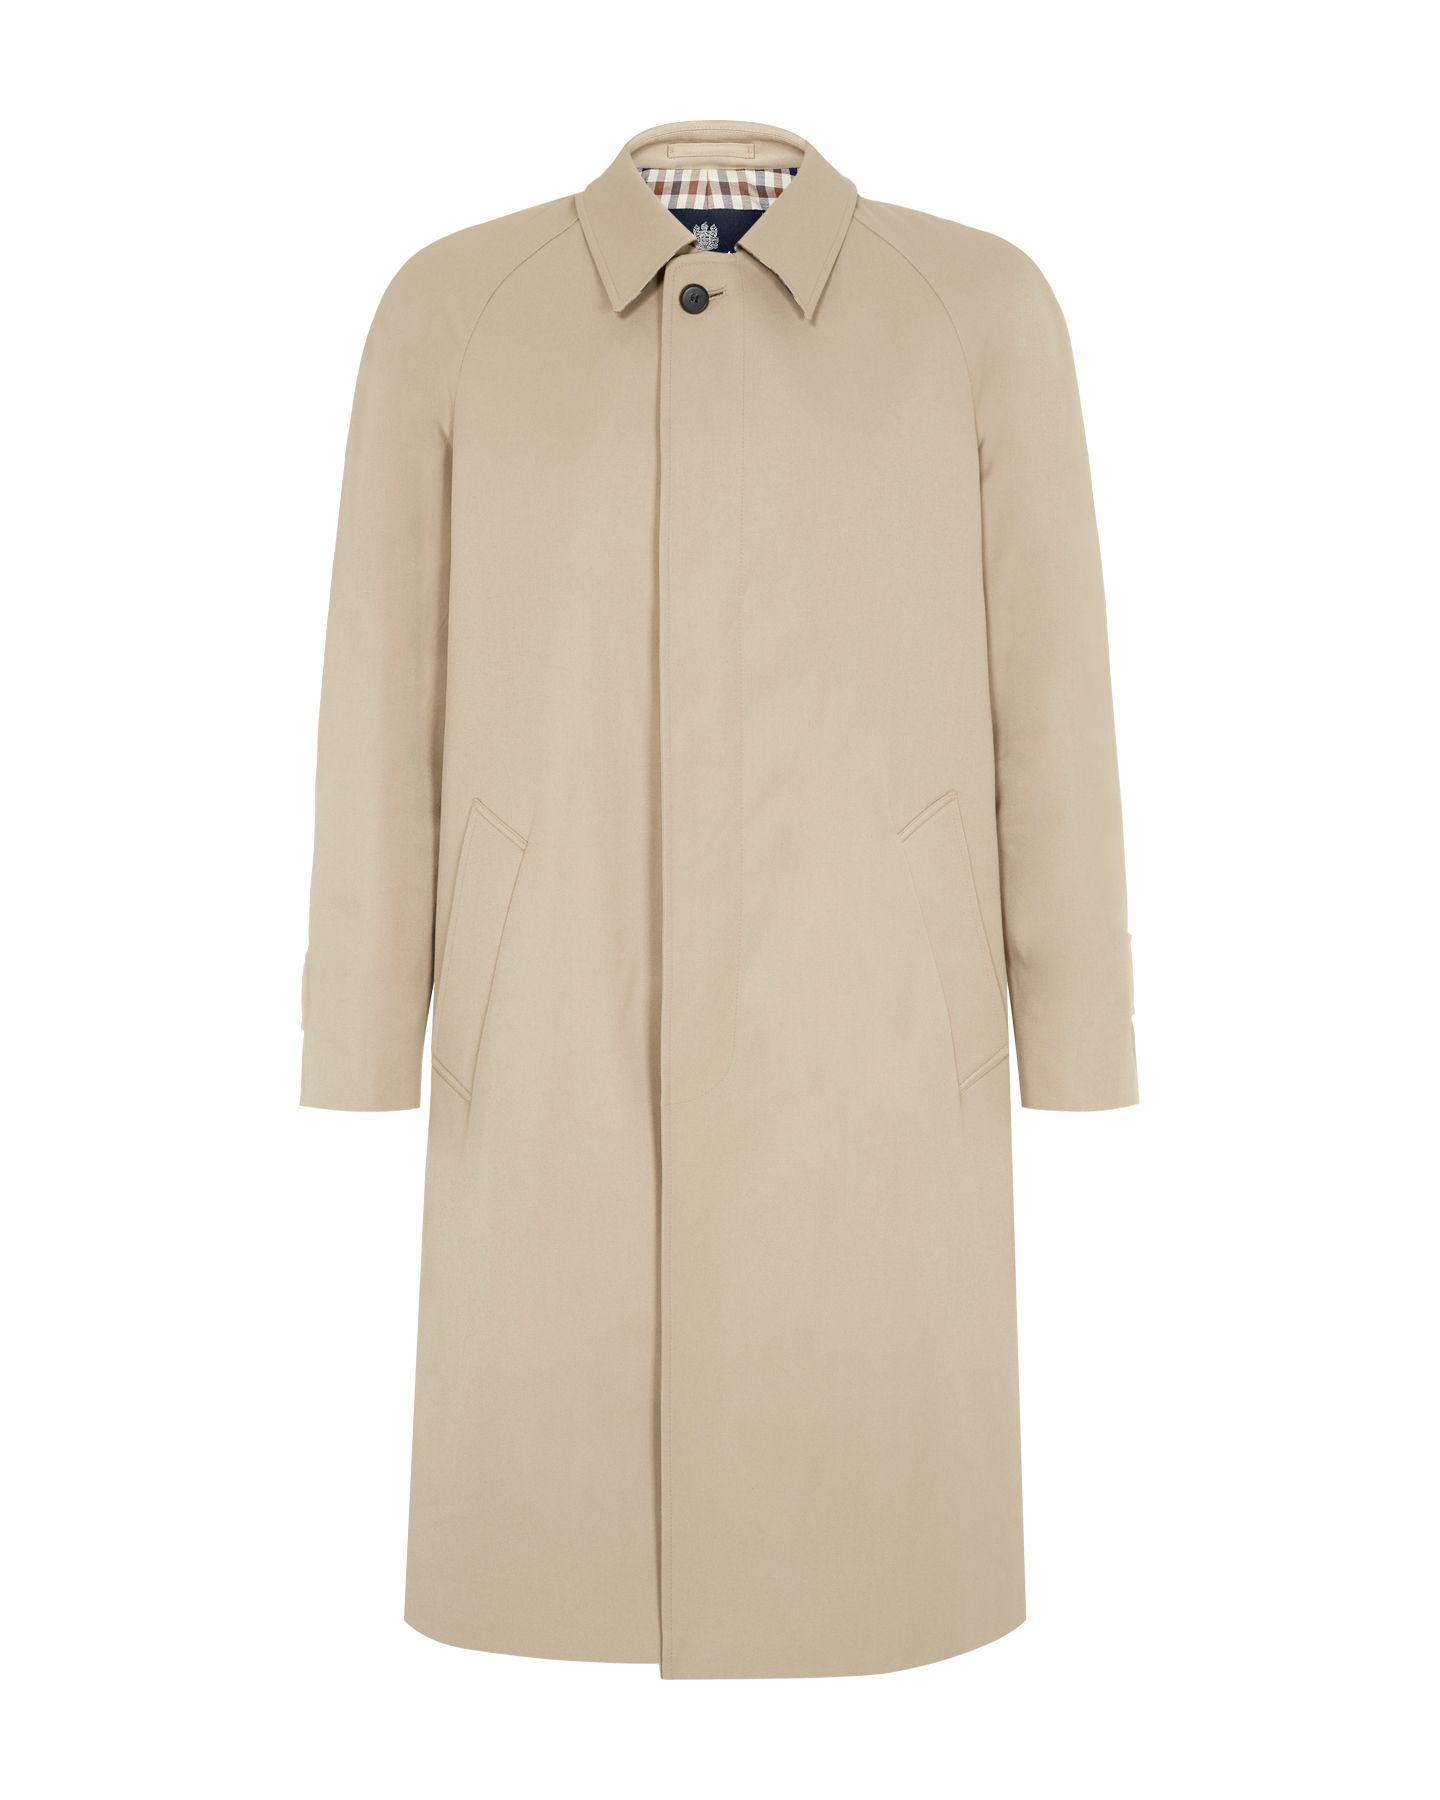 Filey formal single breasted raincoat